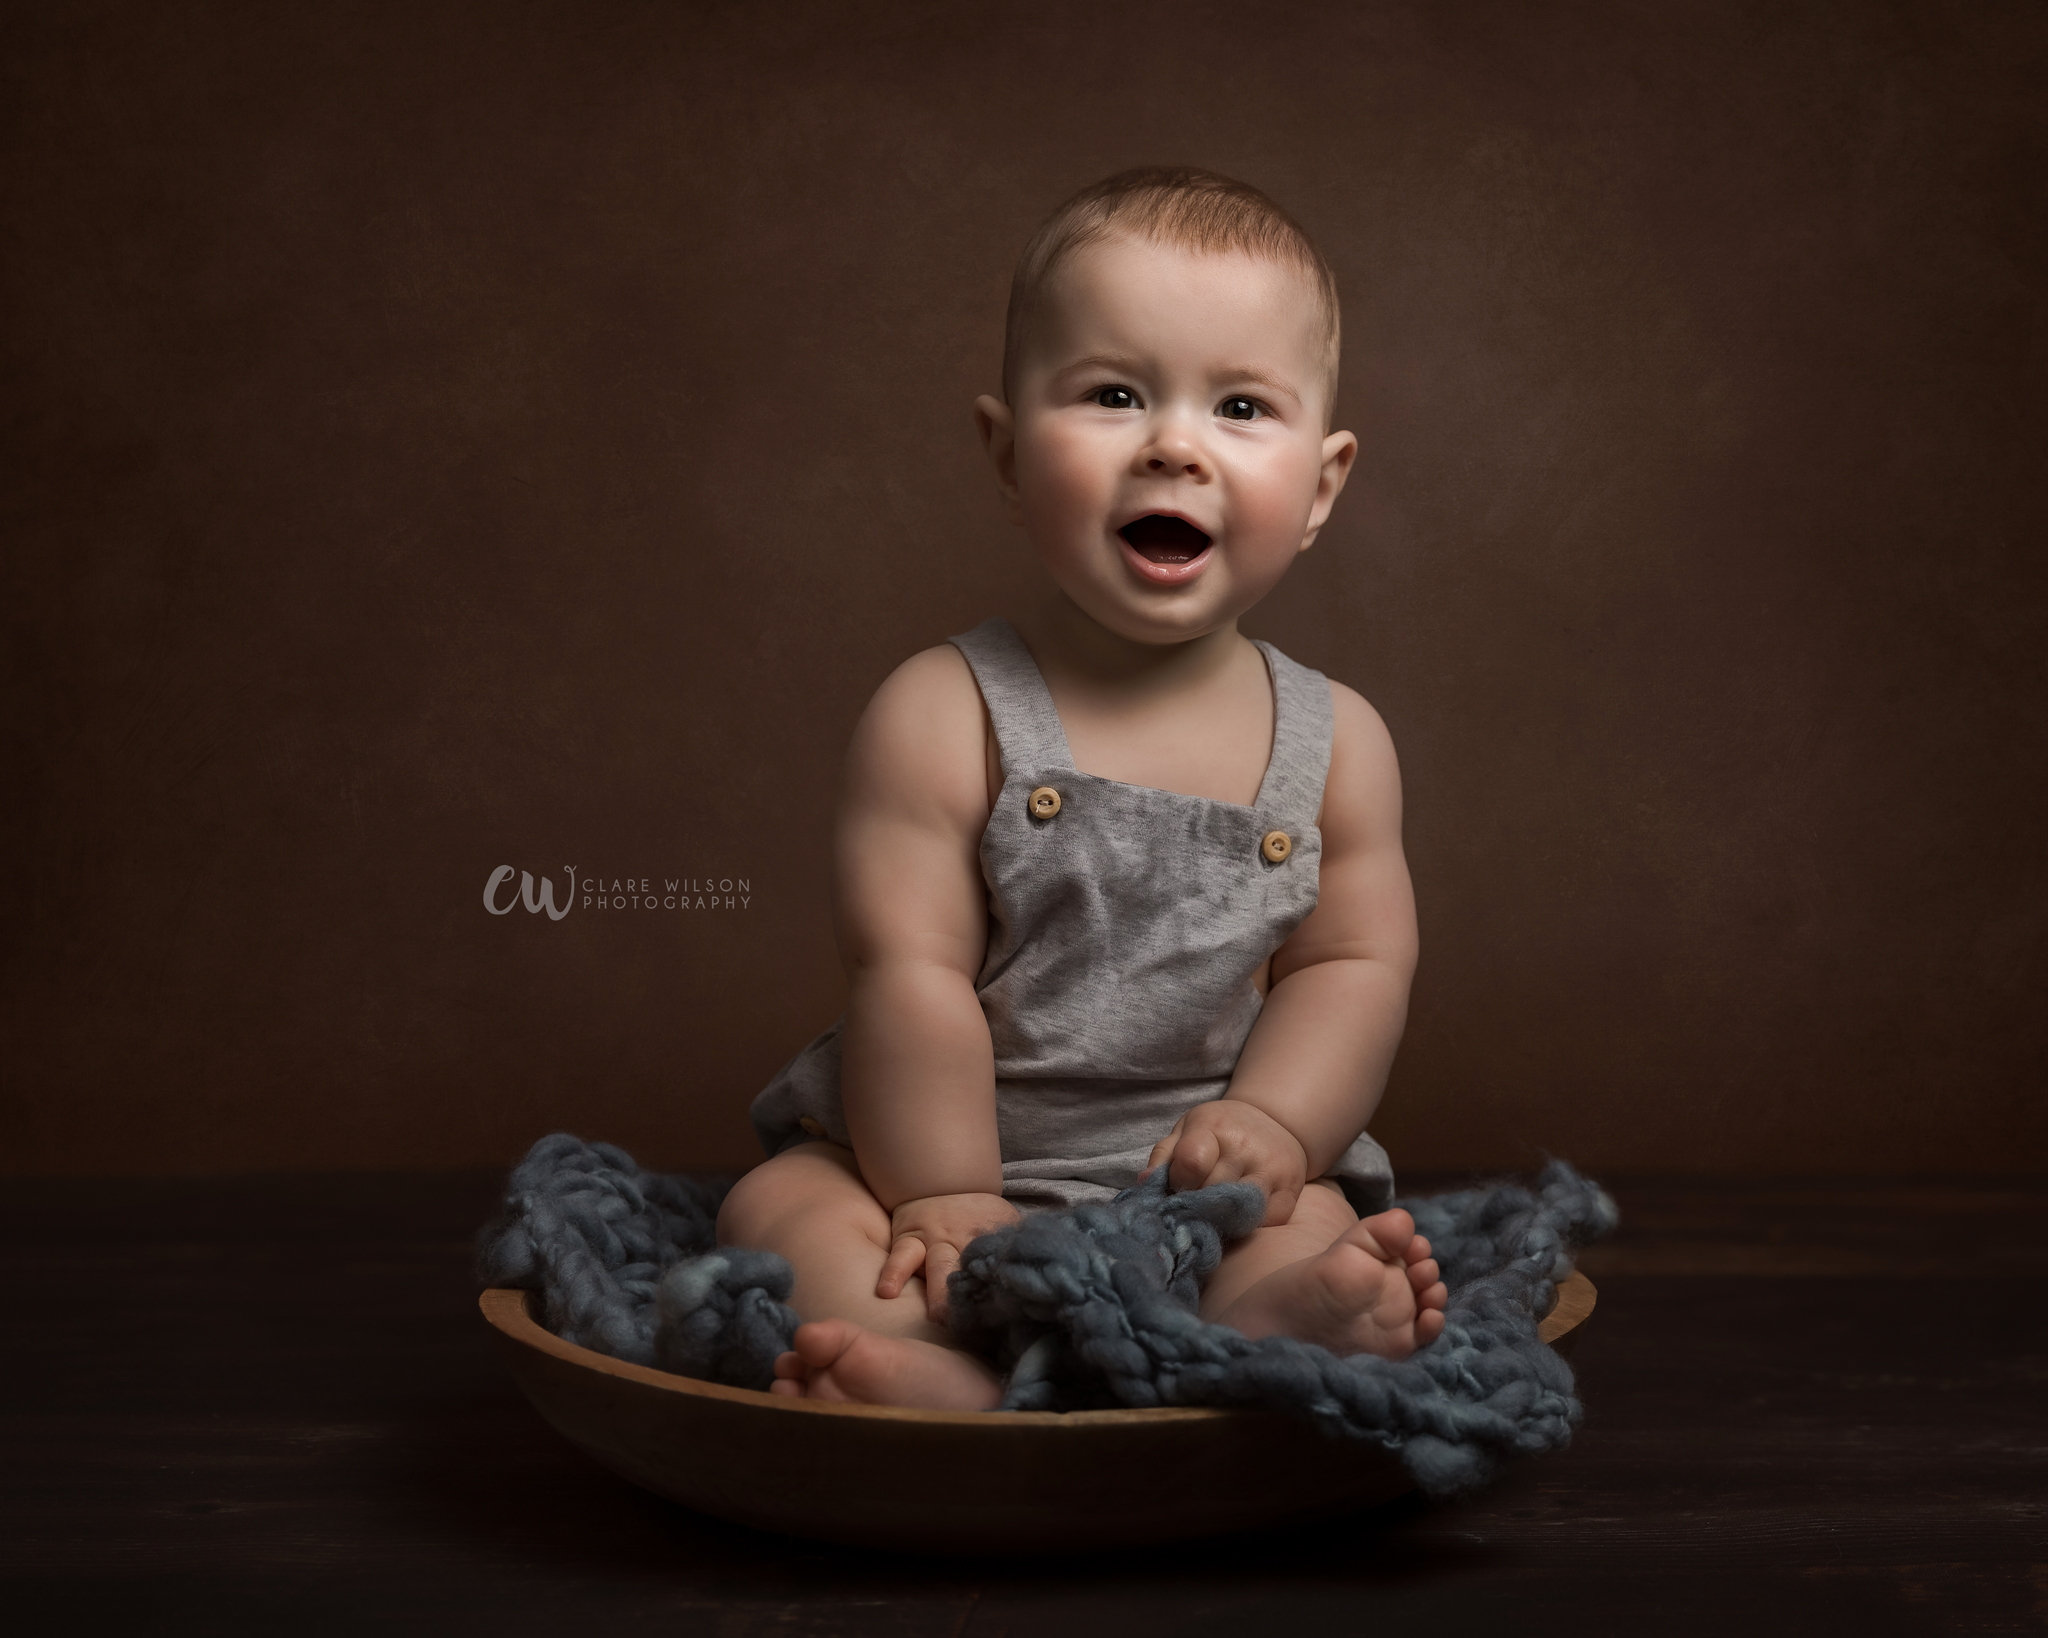 Sitter Baby Photography Photoshoot Clare Wilson Photography Cardiff Caerphilly